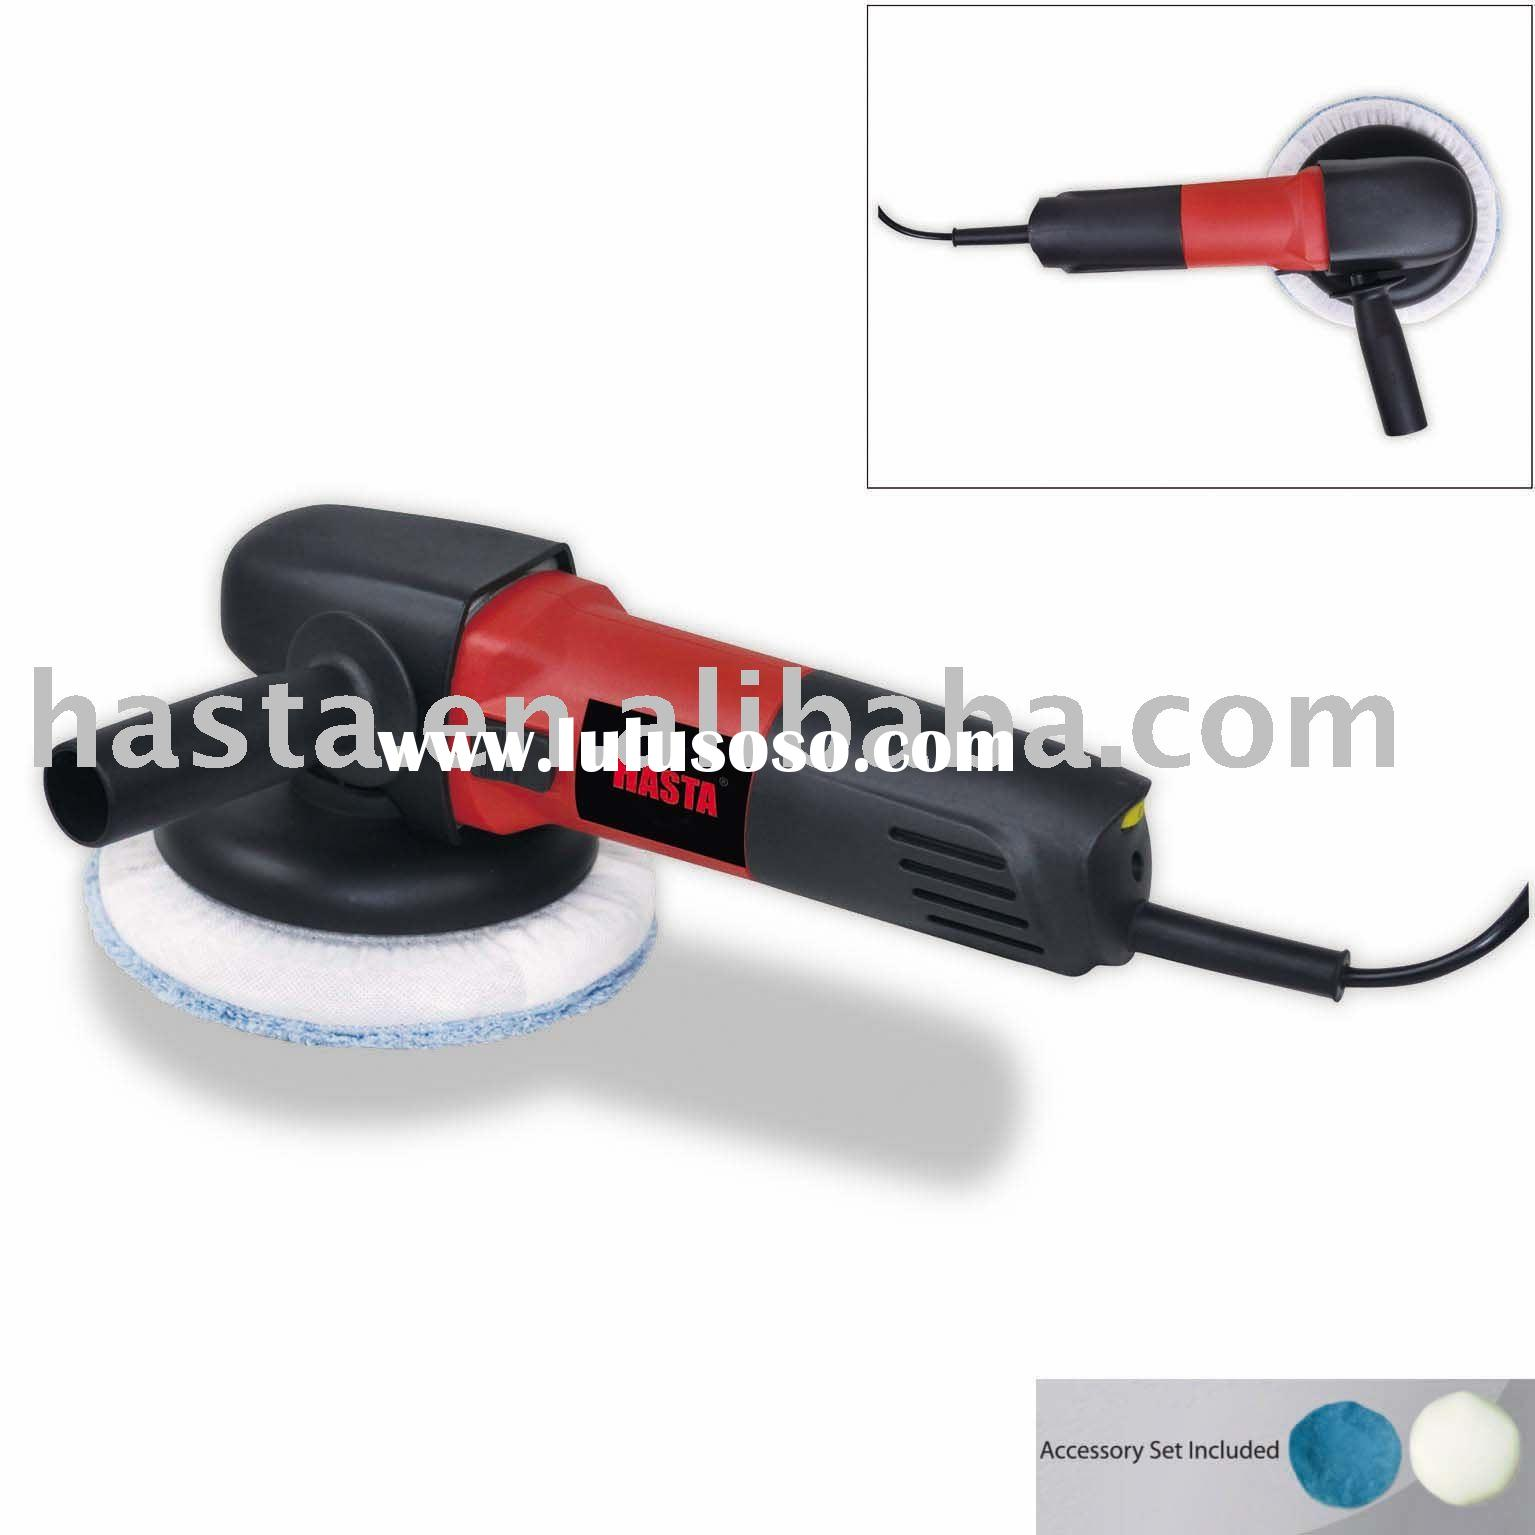 Dual Action Car Polisher